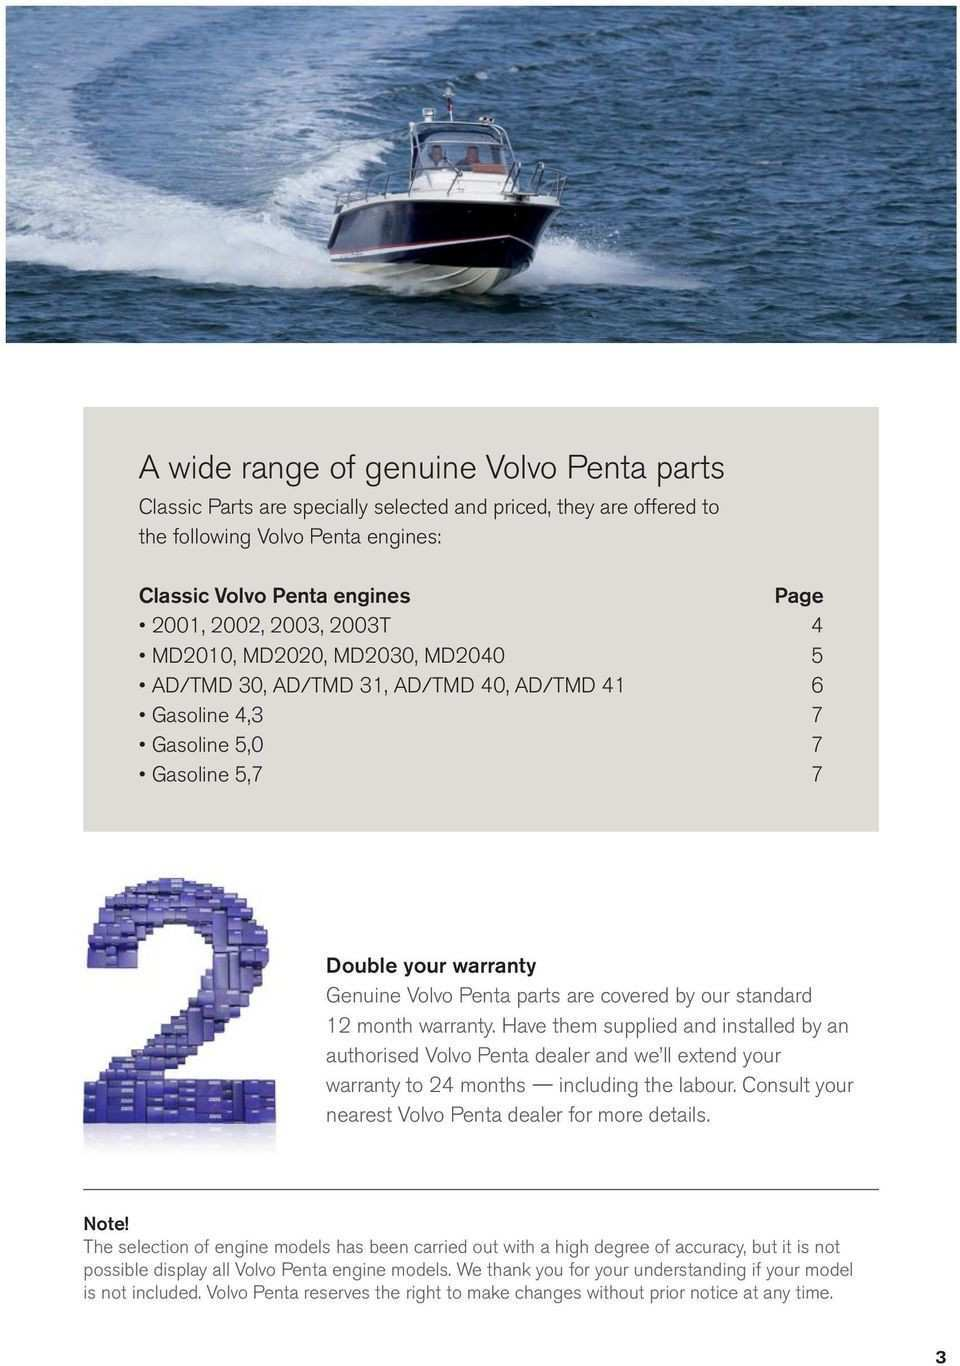 39 The Volvo Penta 2020D Service Manual New Review with Volvo Penta 2020D Service Manual